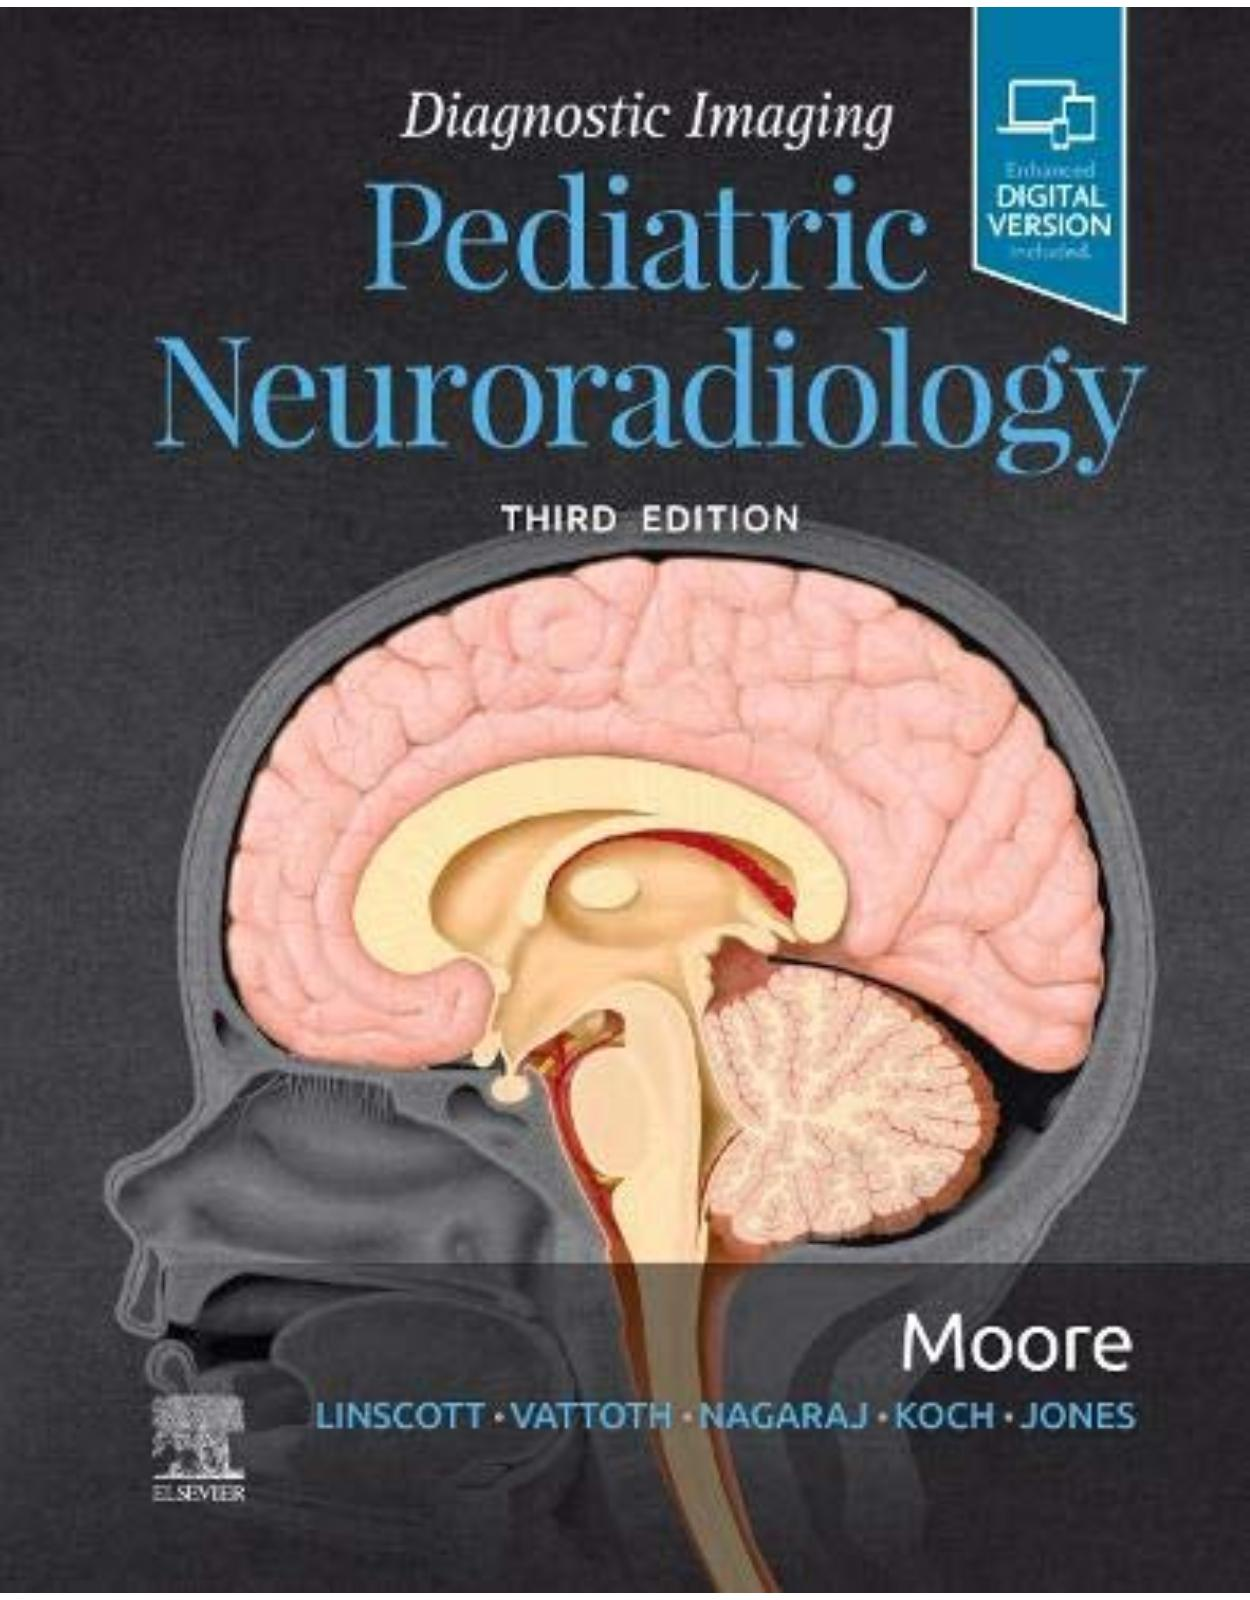 Diagnostic Imaging: Pediatric Neuroradiology, 3rd Edition